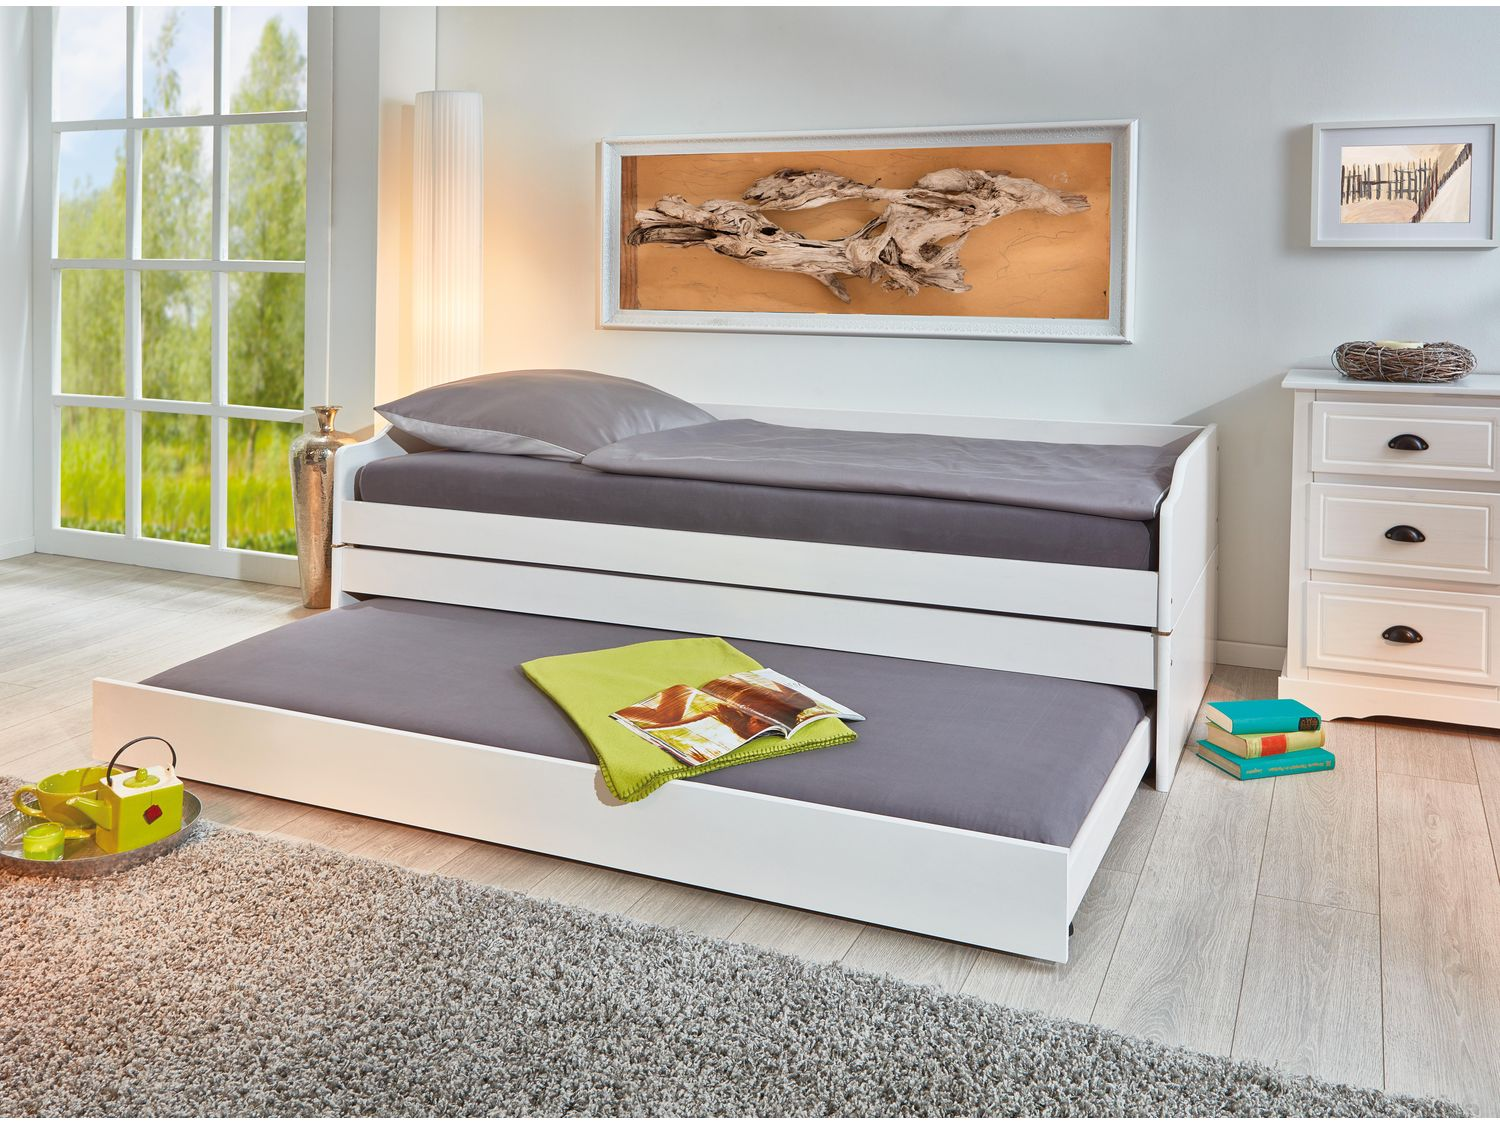 Full Size of Interlink Funktionscouch Lotar Inter Link Lidlde Wohnzimmer Interlink Funktionscouch Lotar